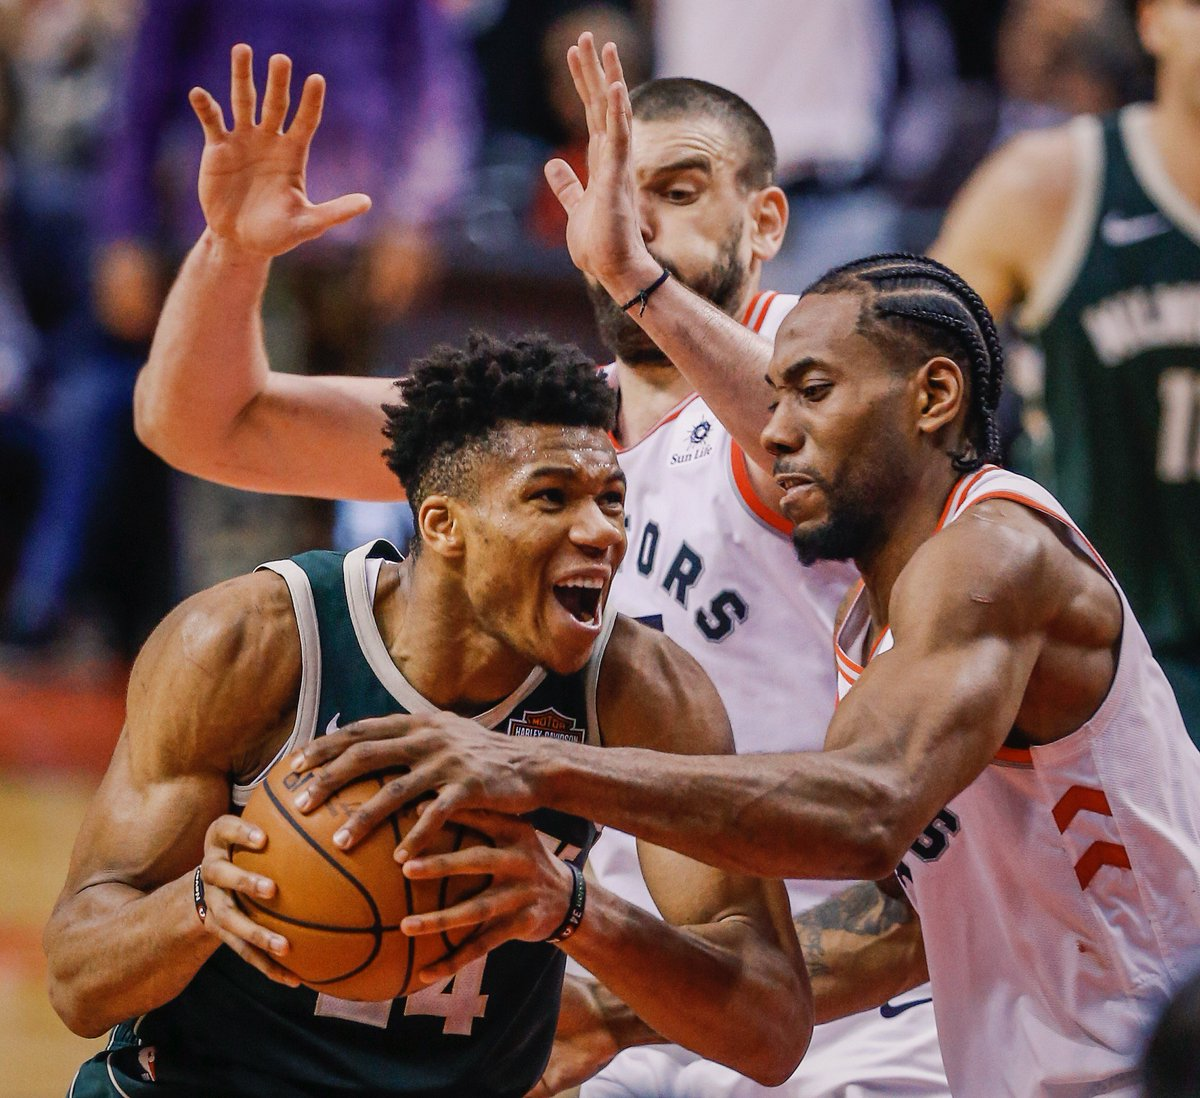 Giannis when guarded by Kawhi in Game 3:  41 possessions 4 PTS 2-12 FG 0-3 3PT 1 AST 2 TO  The Klaw clamped him.  (via @nbastats)